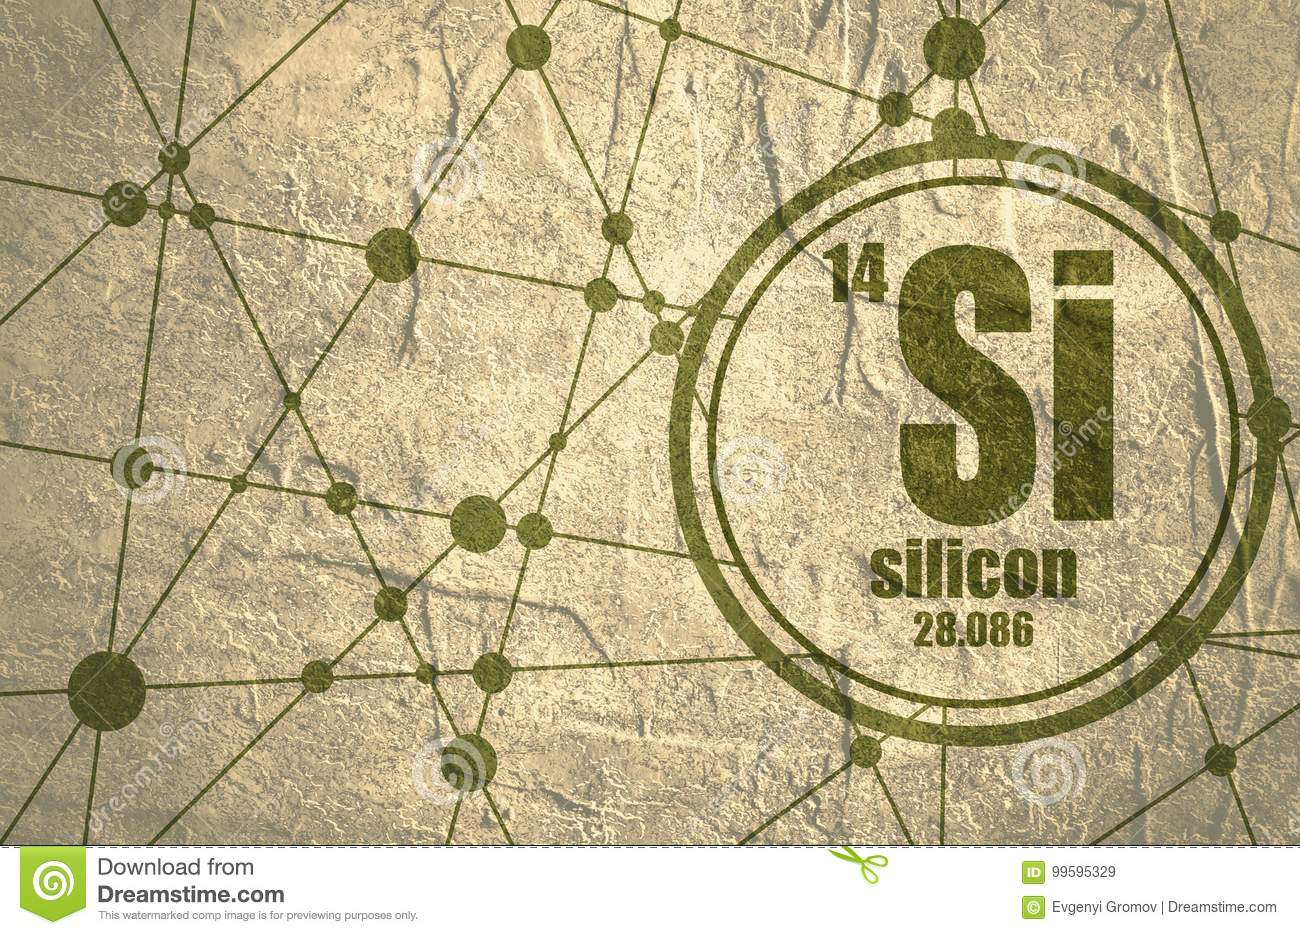 Silicon Chemical Element Stock Illustration Illustration Of